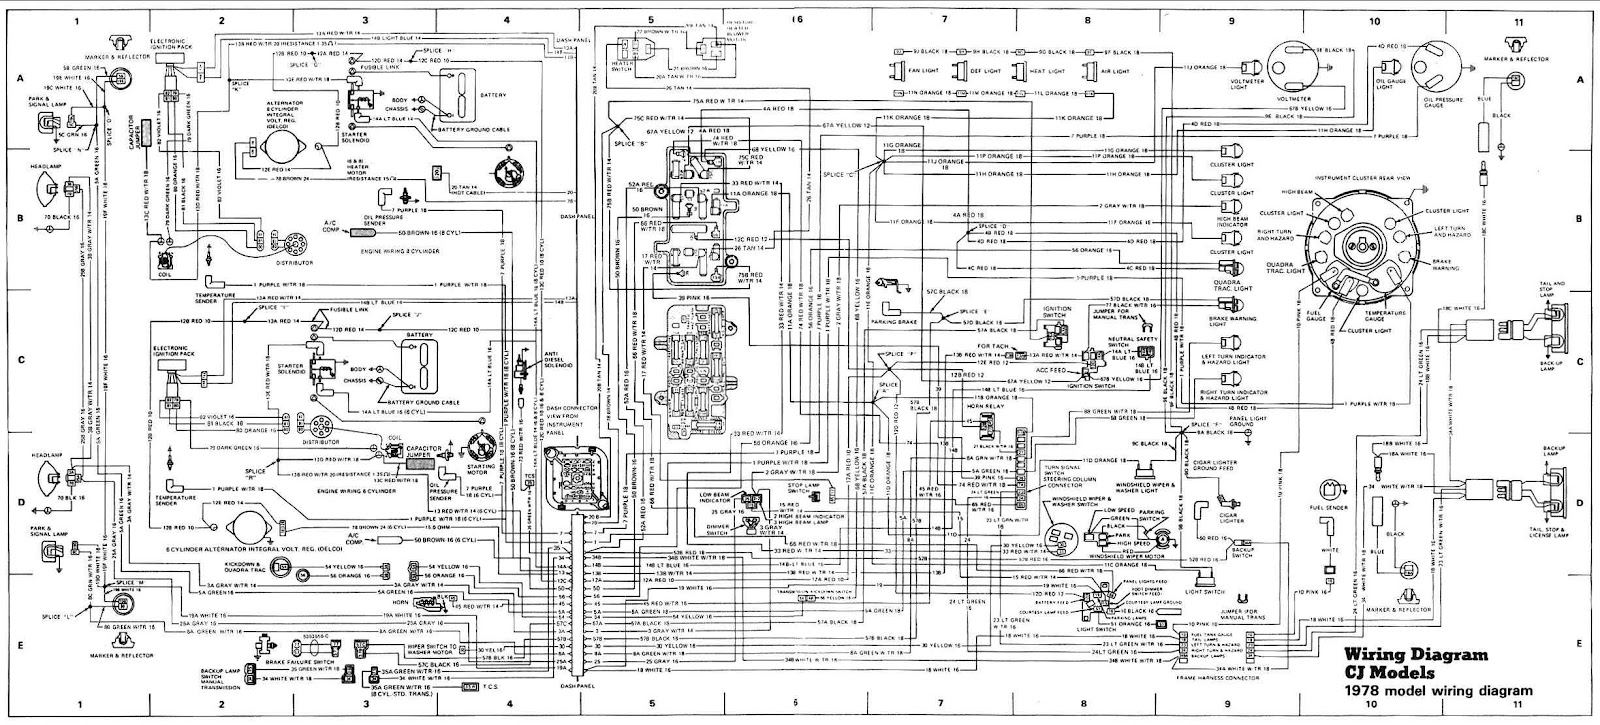 Jeep+CJ+Models+1978+Complete+Electrical+Wiring+Diagram jeep cj models 1978 complete electrical wiring diagram all about Chevy Wiring Harness Diagram at creativeand.co